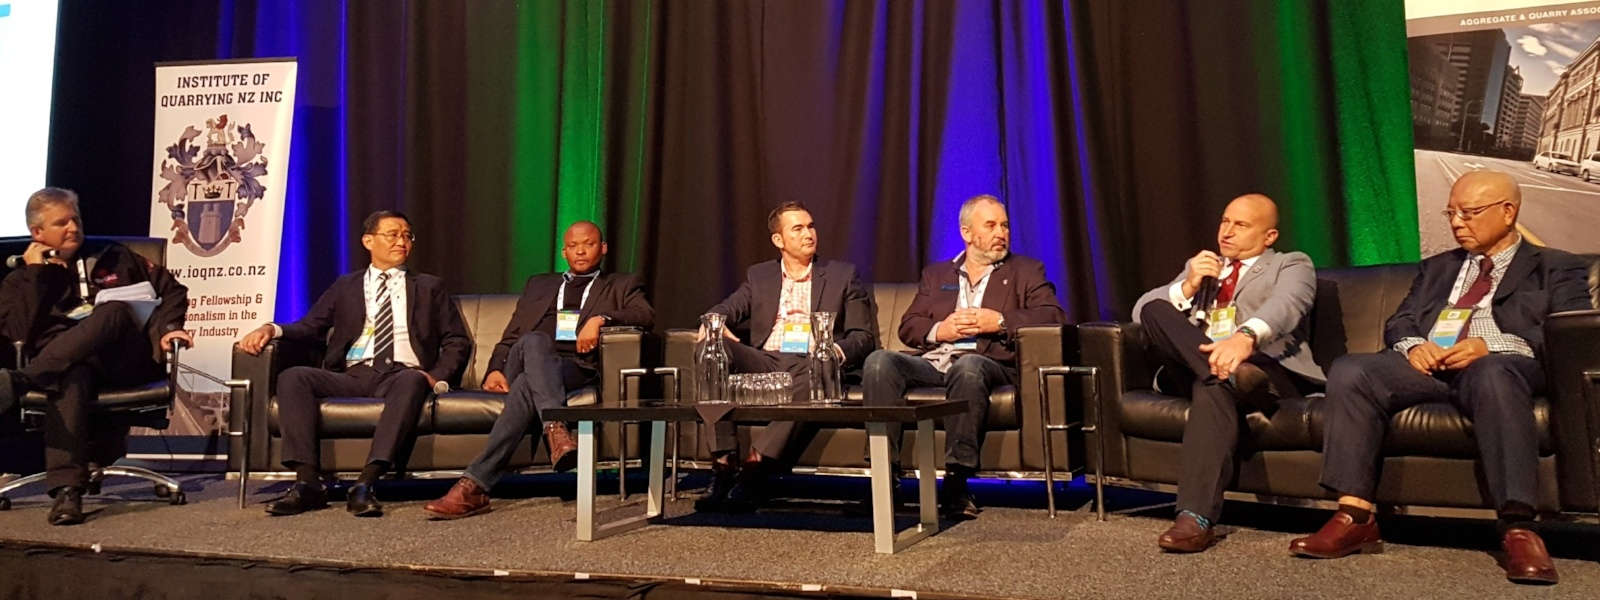 IQ President speaking at IQ New Zealand Conference 2018